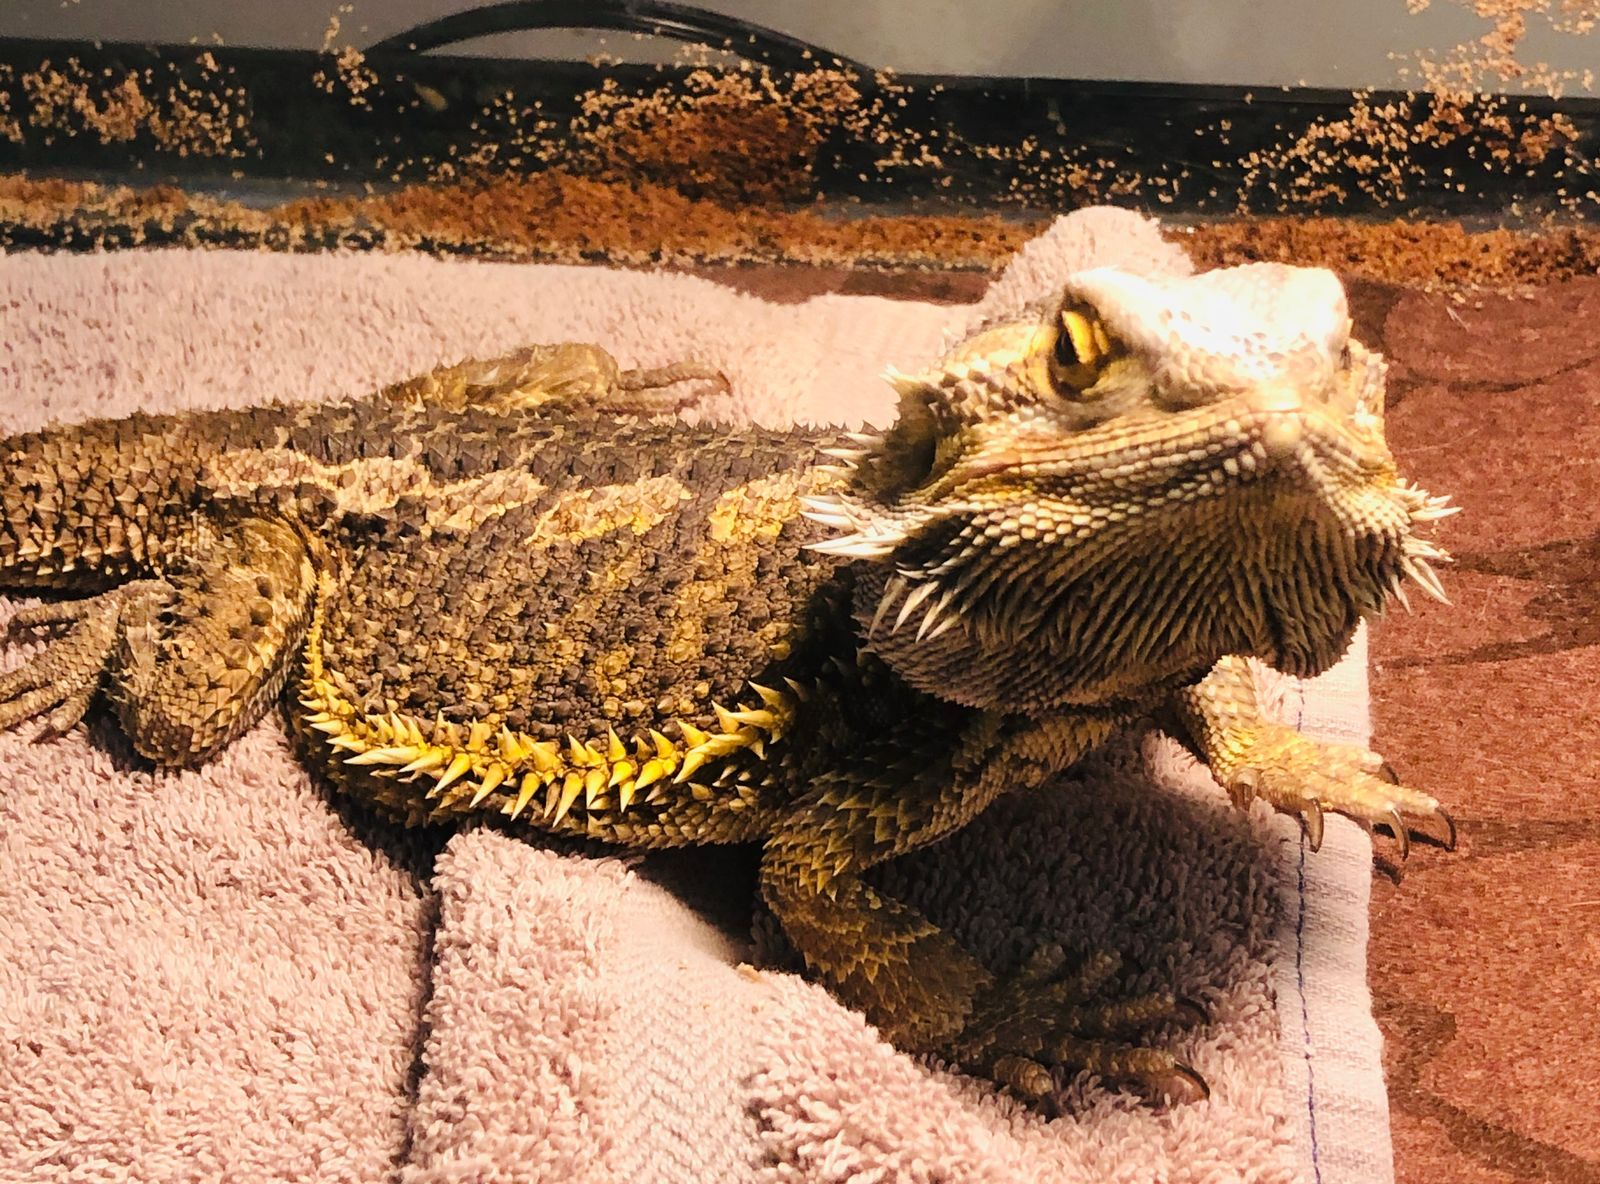 A bearded dragon ad boa constrictor were abandoned Wednesday morning, Aug. 5, 2020, at the Humane Society of Greater Dayton. (HSGD photo)